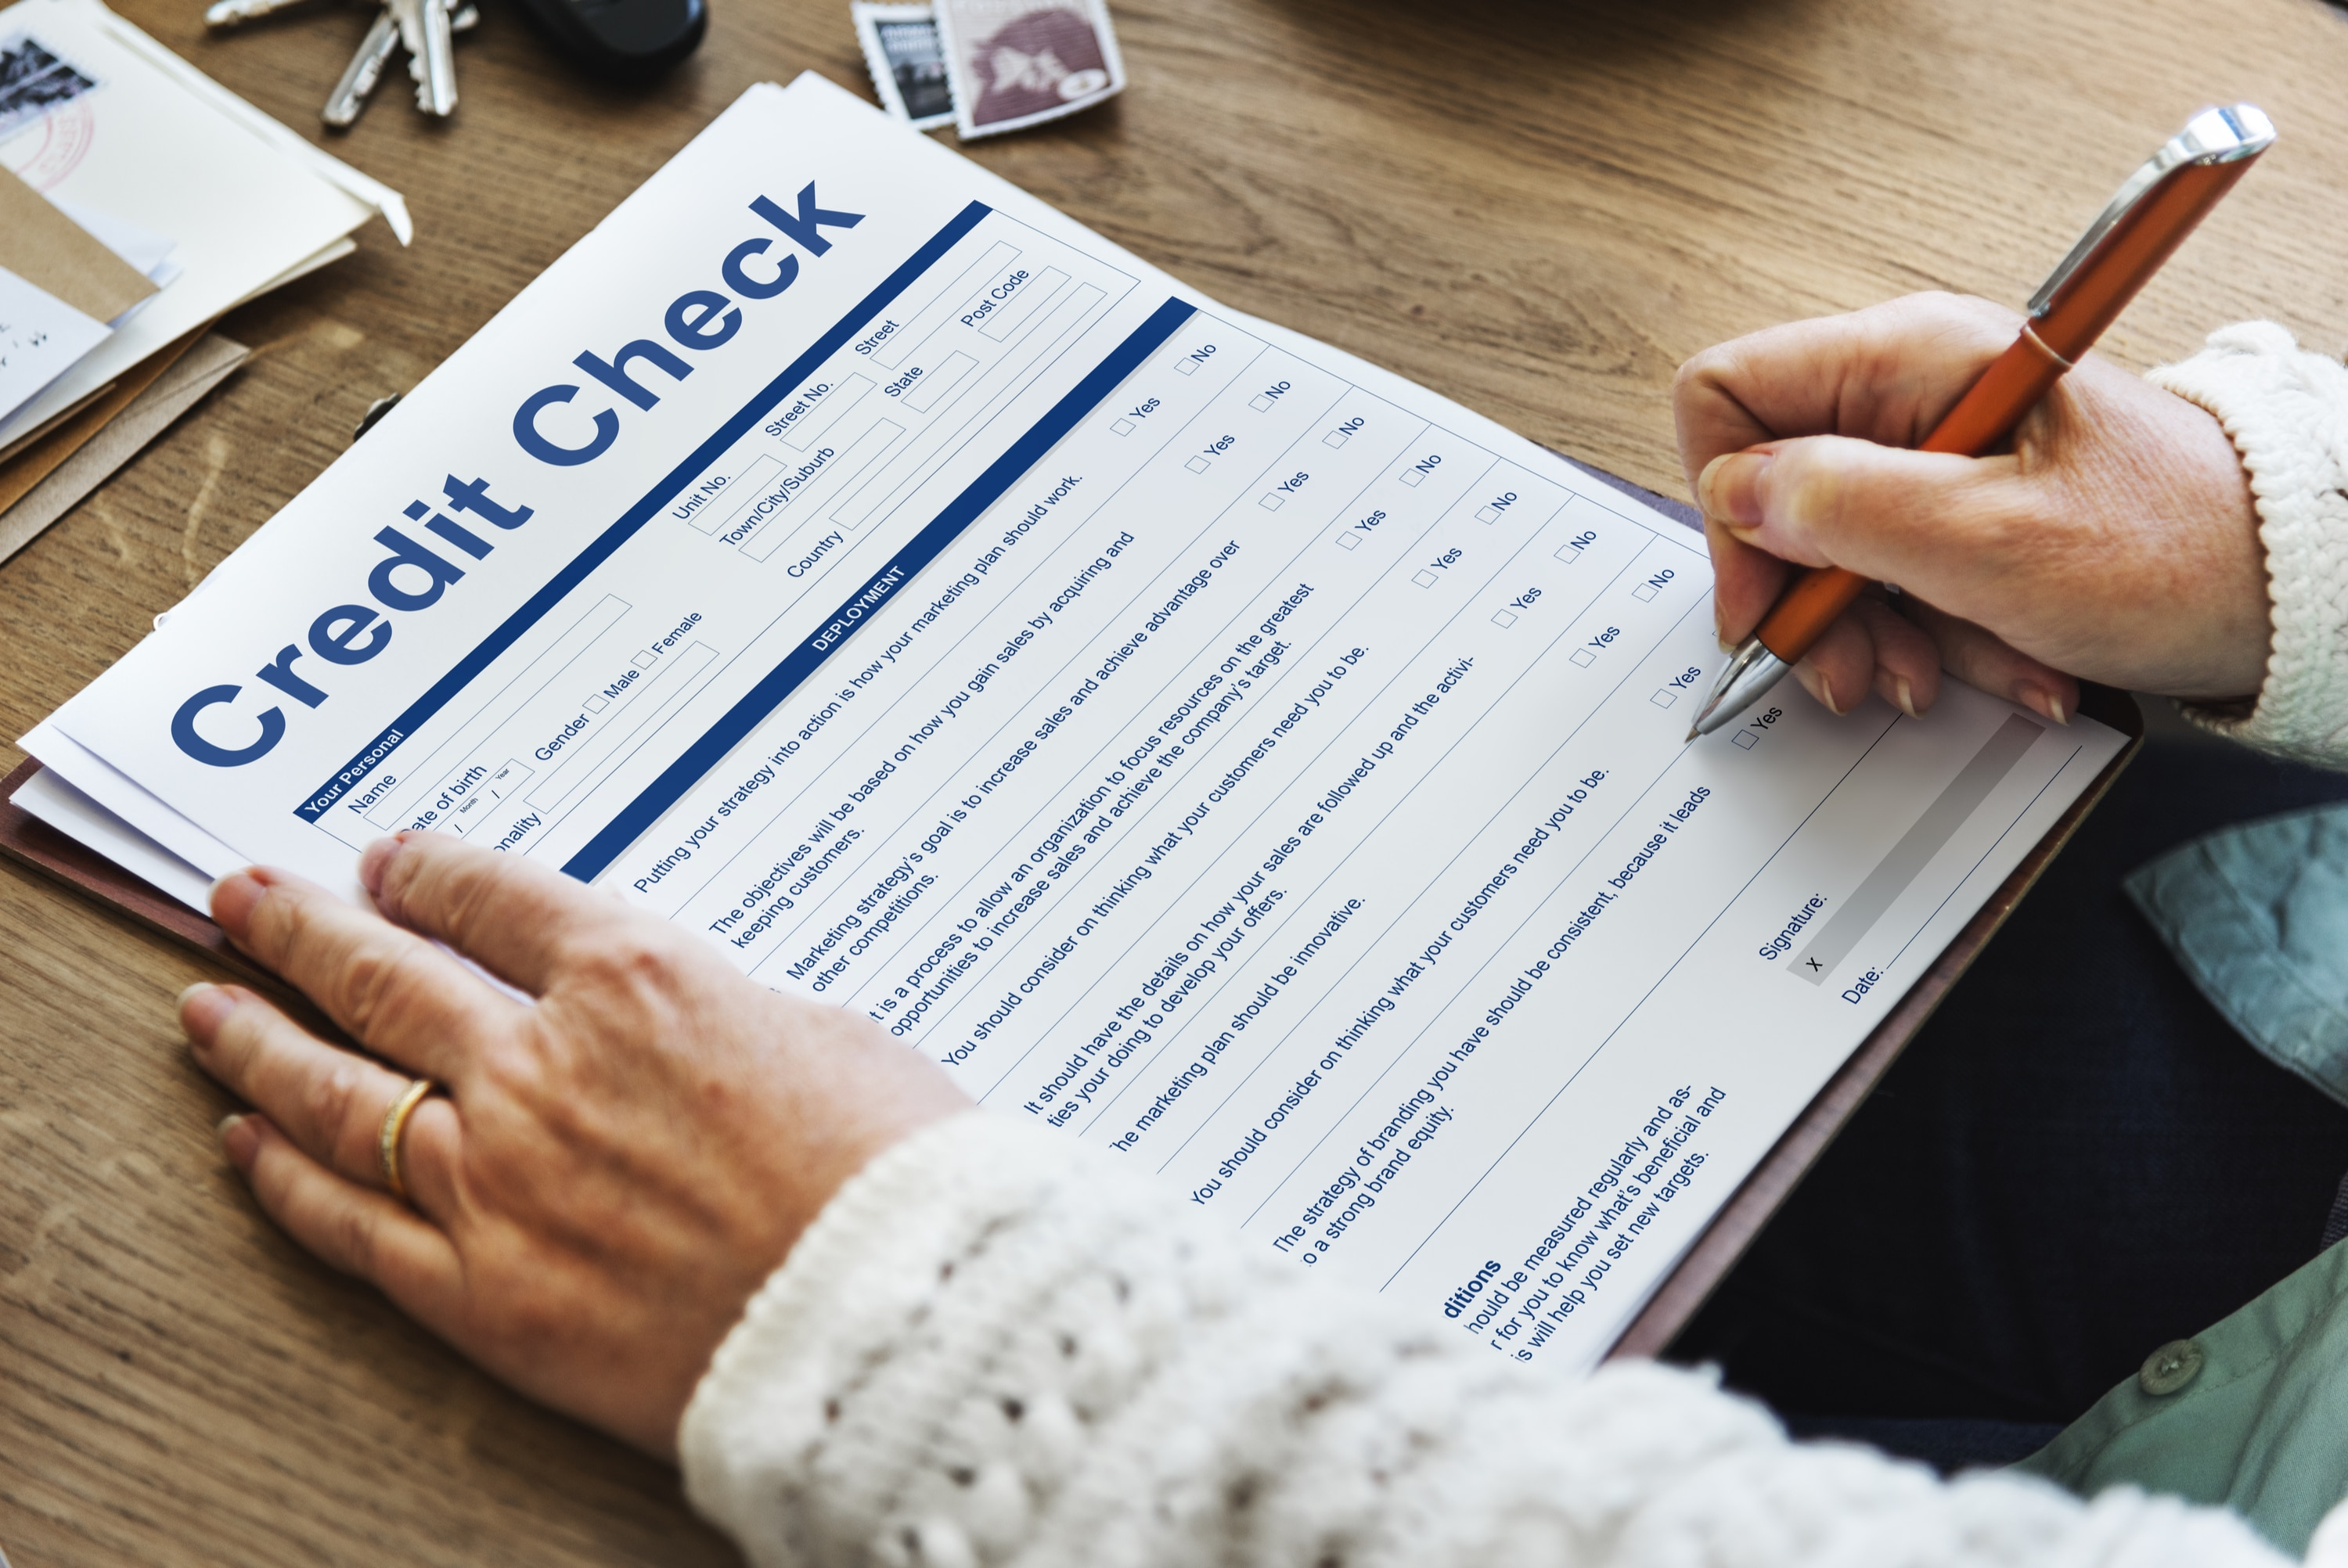 How to Run a Credit Check on a Potential Tenant - For Landlords